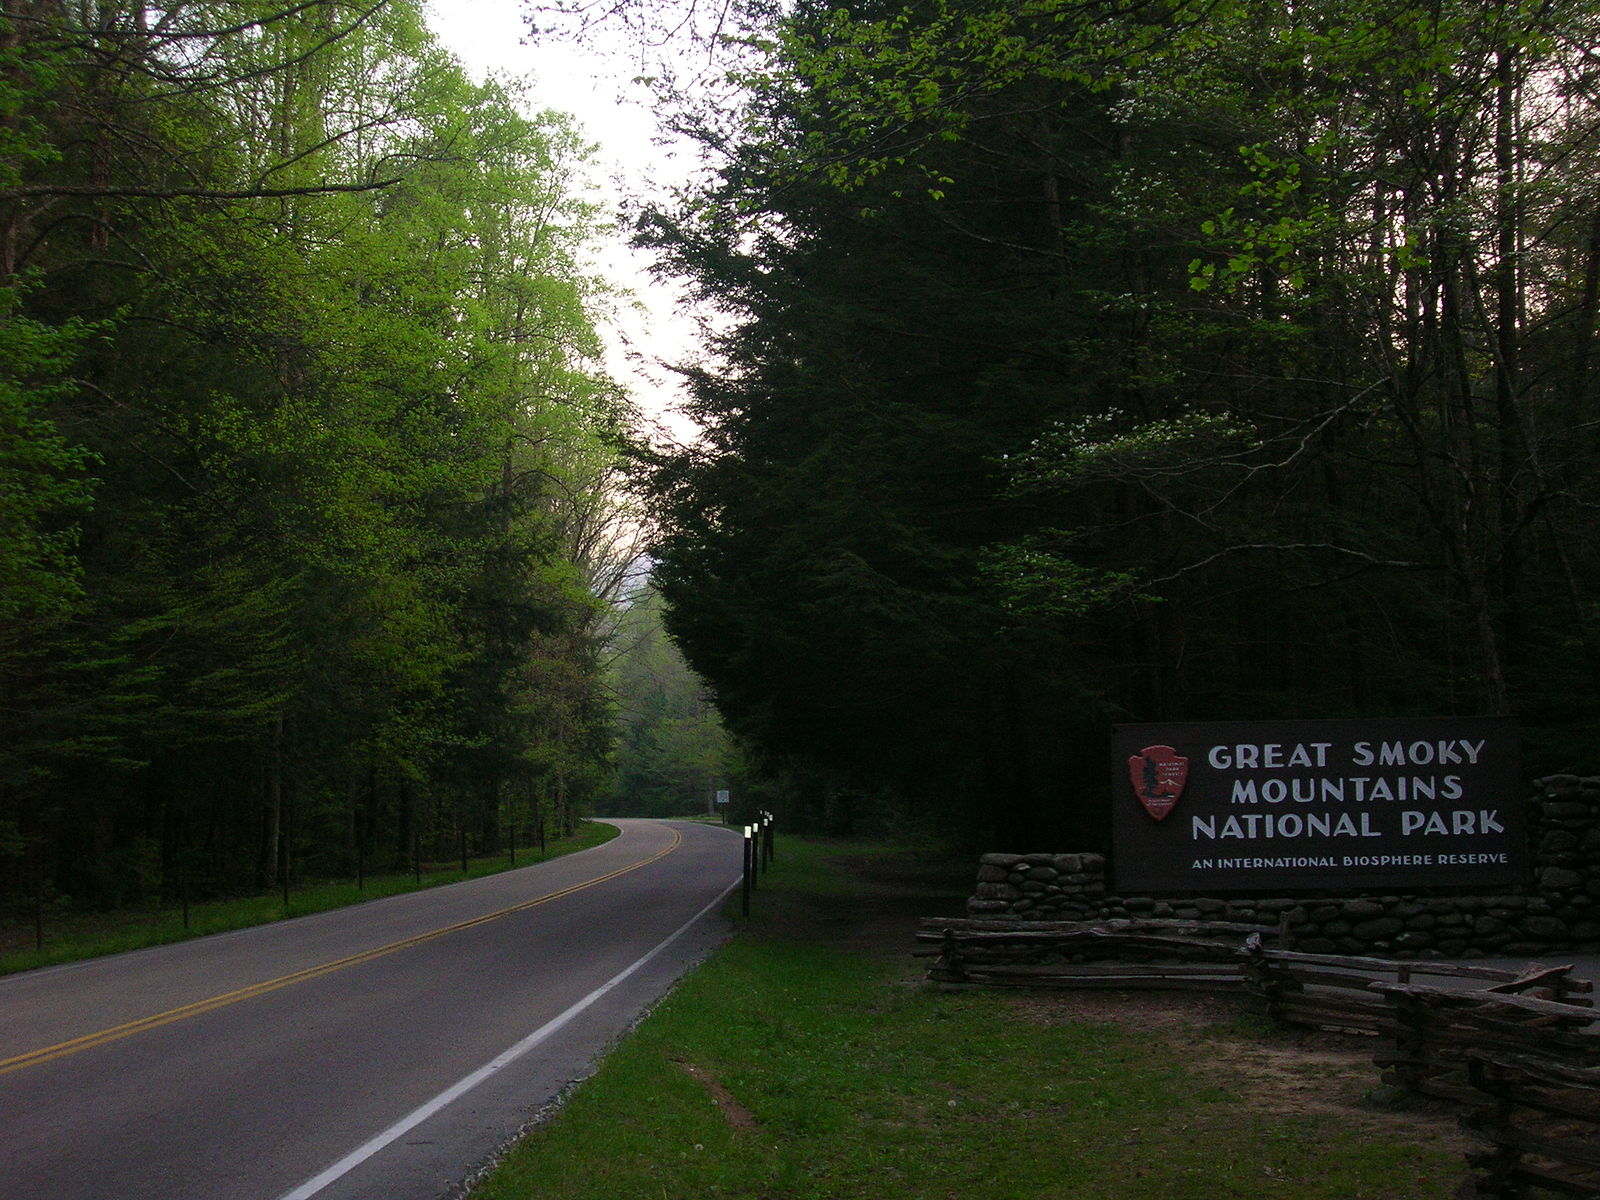 Main_Entrance_to_the_Great_Smoky_Mountains_National_Park_from_Gatlinburg,_Tennessee